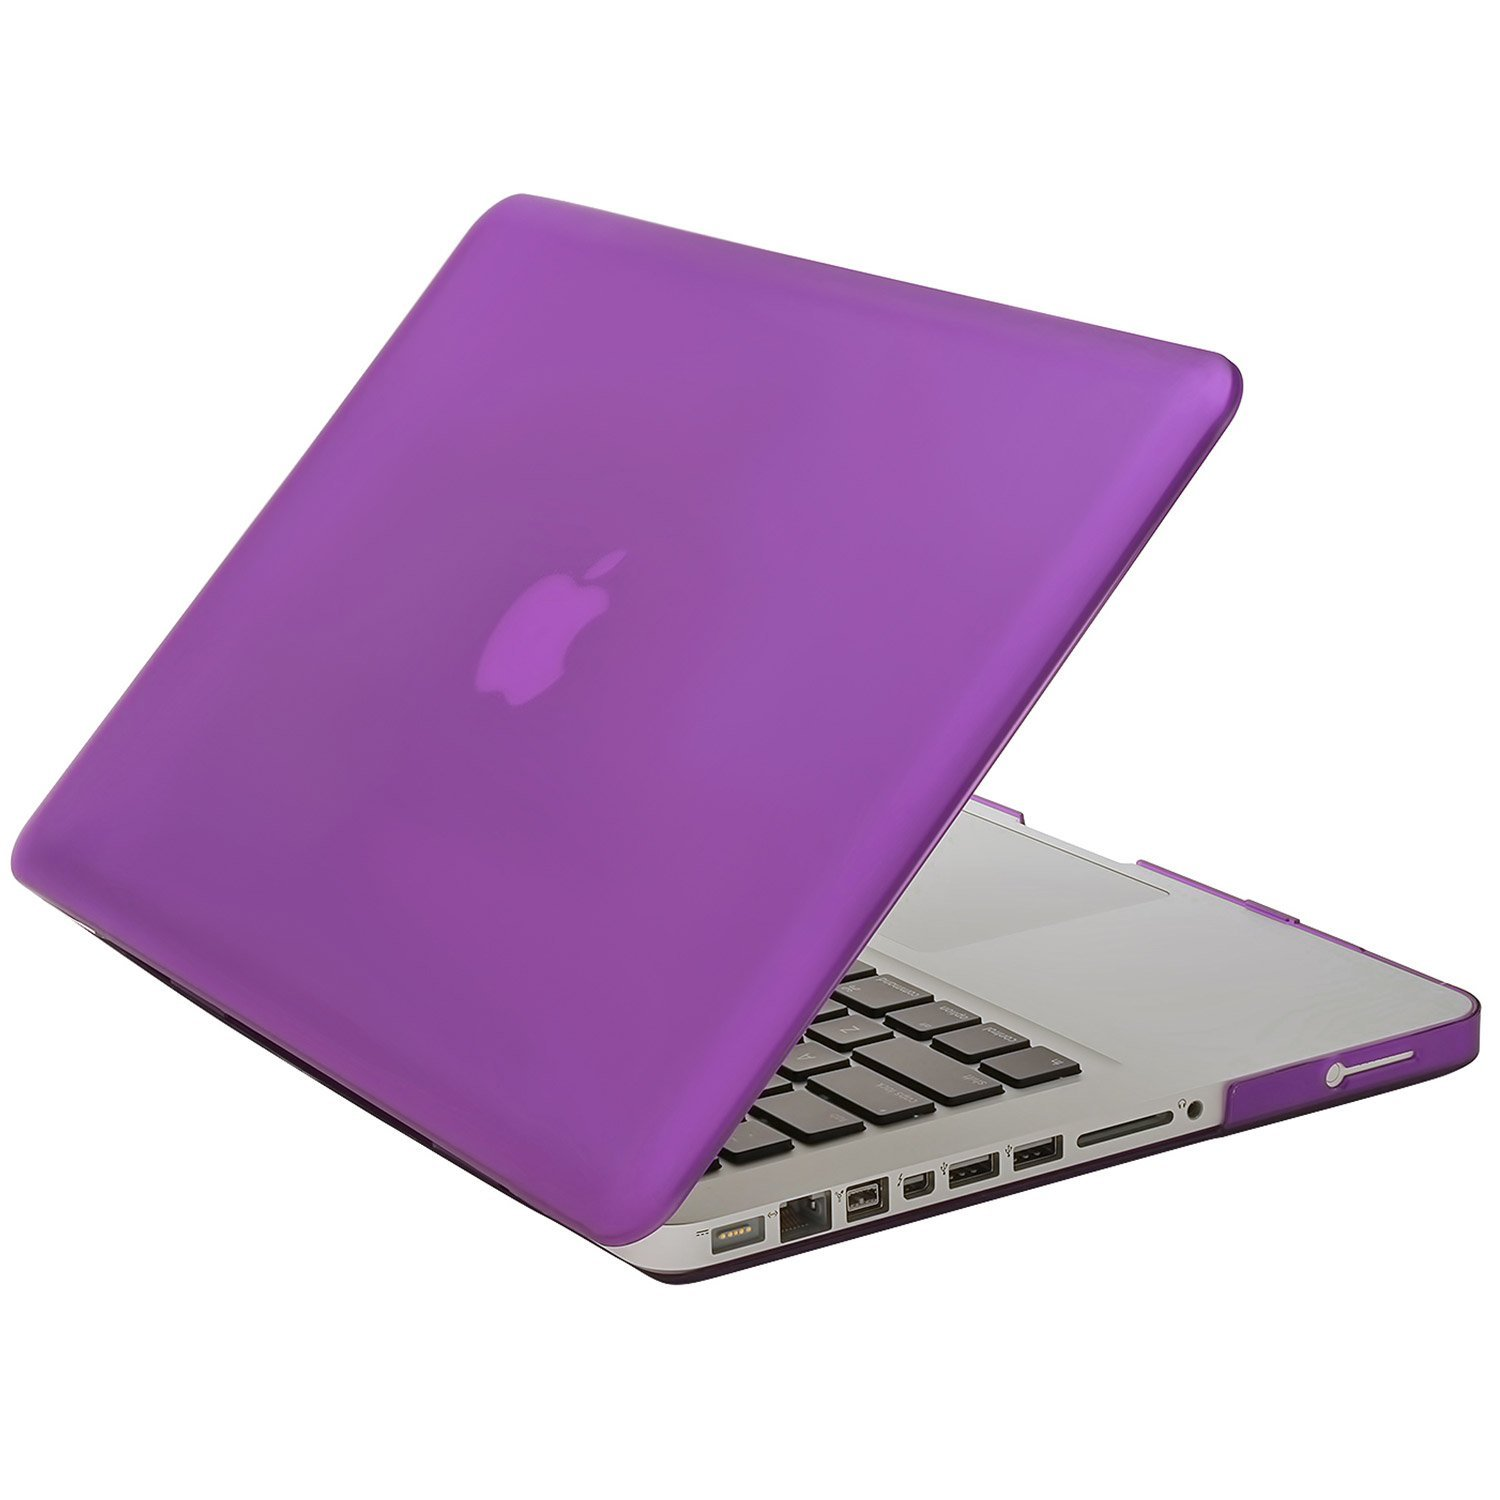 Aduro Macbook Pro 15 SoftTouch Cover with Matching Silicone Keyboard Cover (Purple)